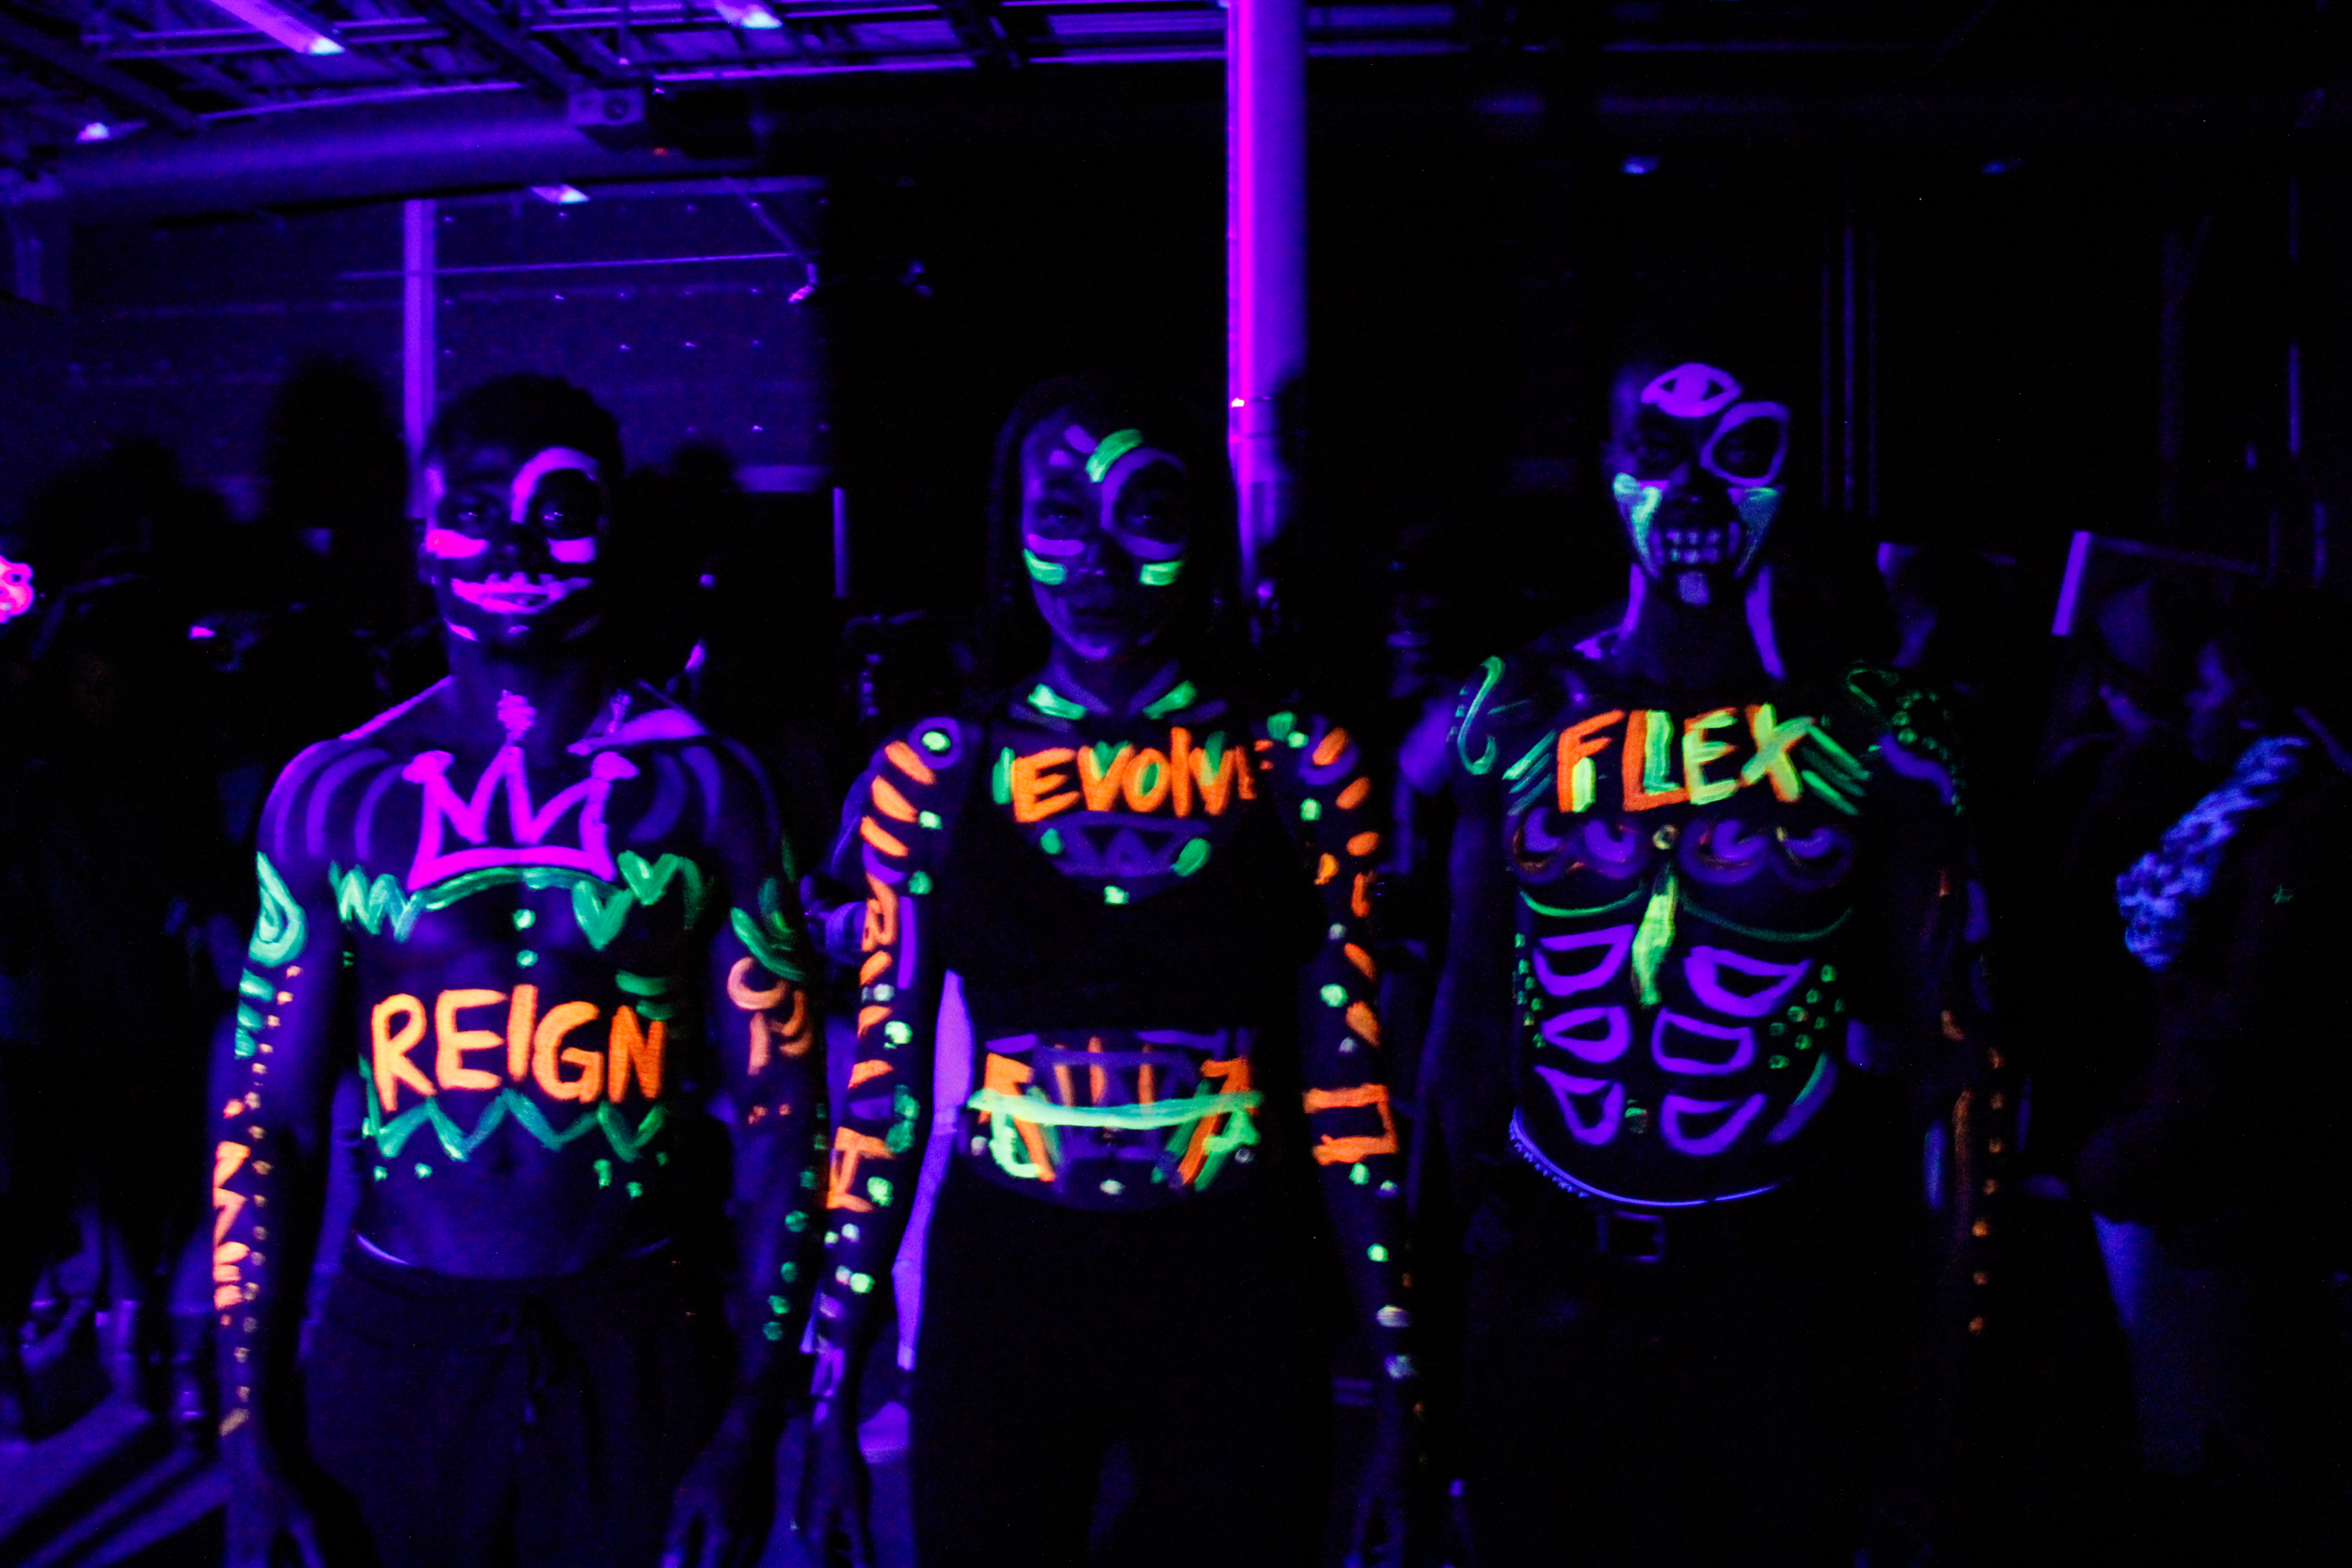 Models in blacklight